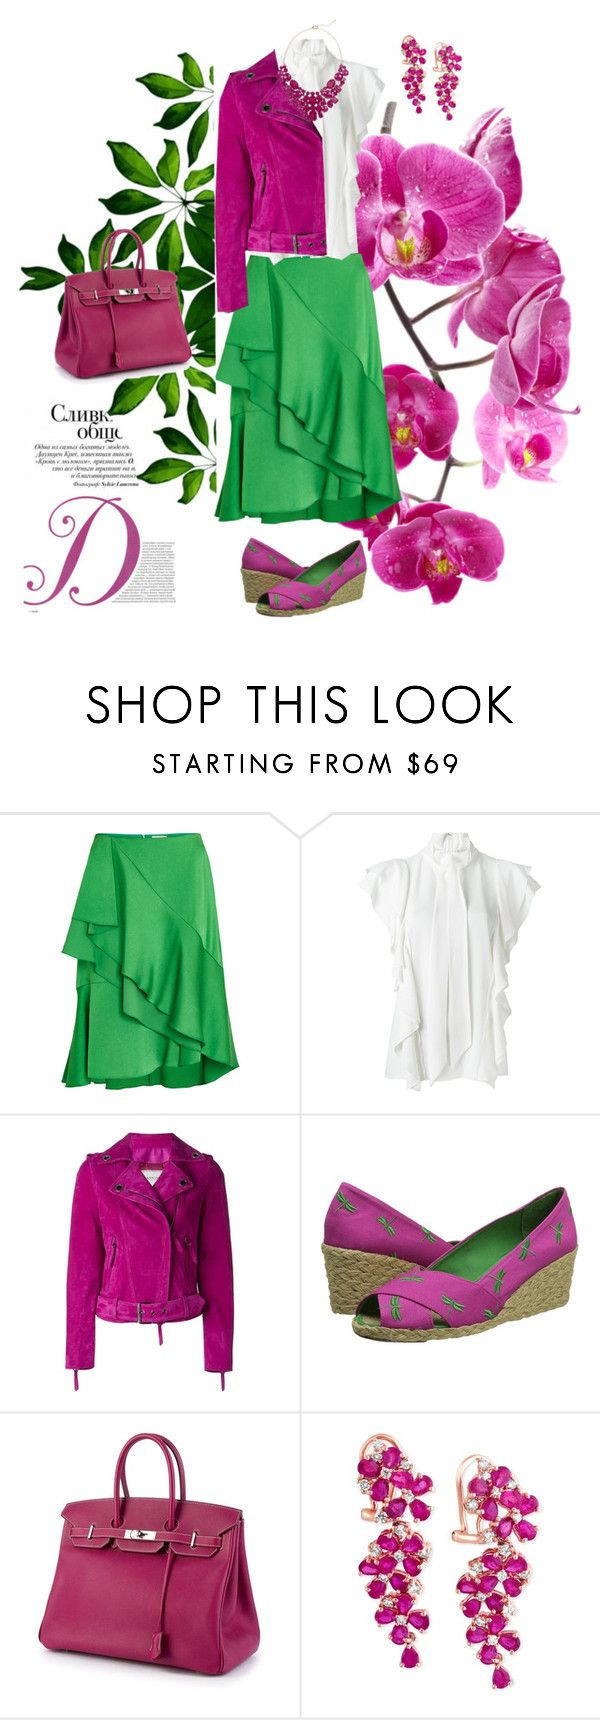 """Untitled #203"" by peggysoans ❤ liked on Polyvore featuring Lanvin, Lauren Ralph Lauren, Hermès, Effy Jewelry and Eye Candy"